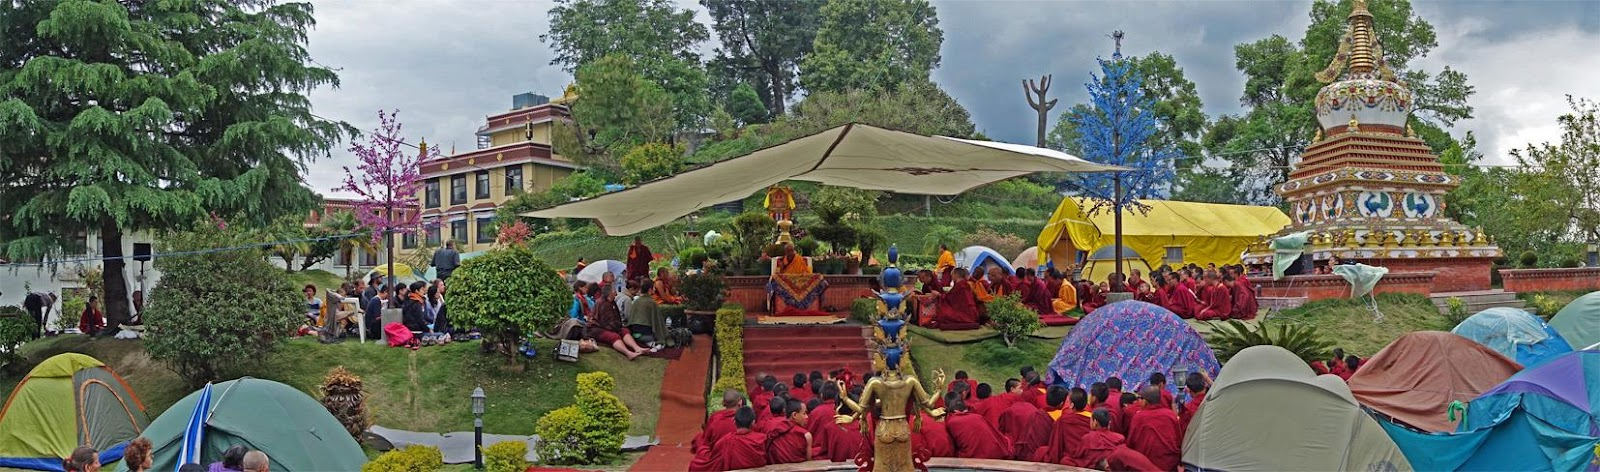 Tents around the stupa at Kopan Monastery the day after the earthquake struck.